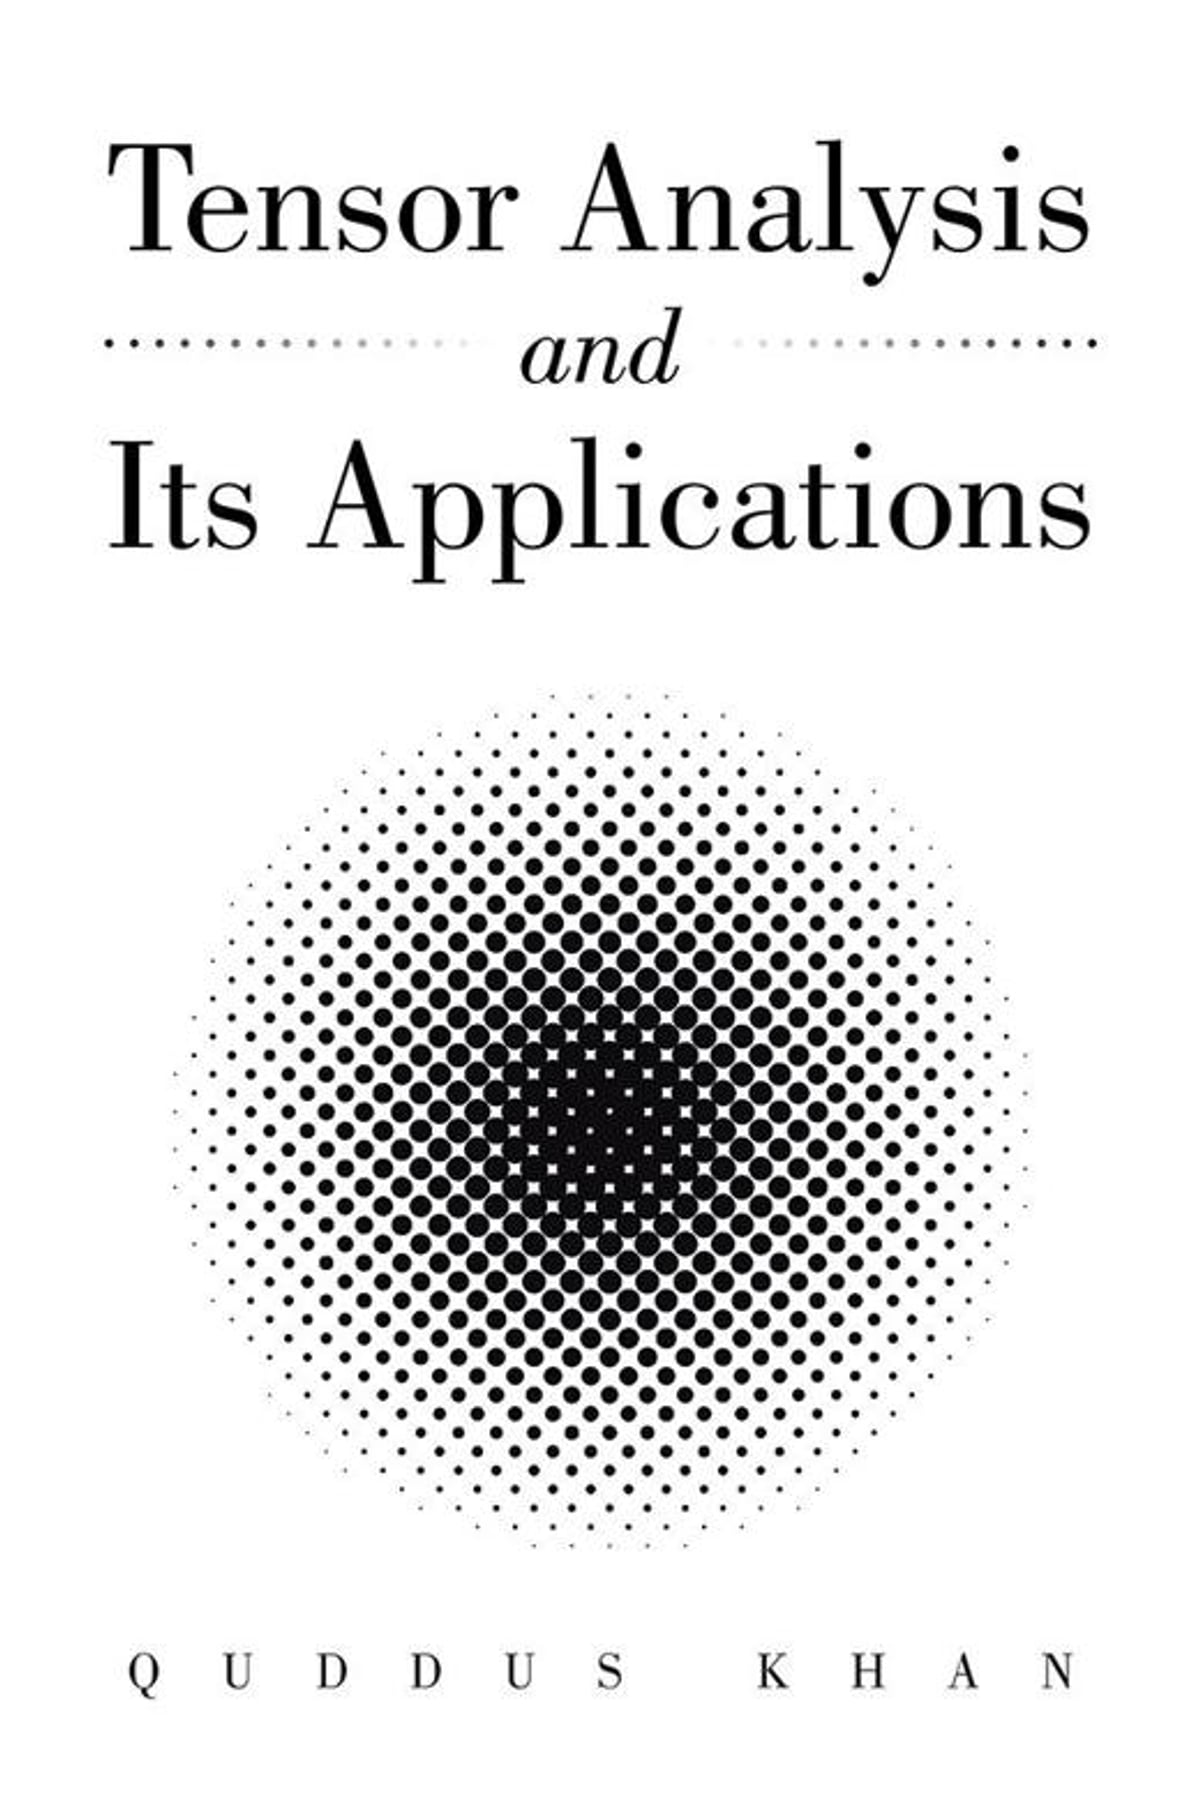 Tensor Analysis and Its Applications ebook by Quddus Khan - Rakuten Kobo